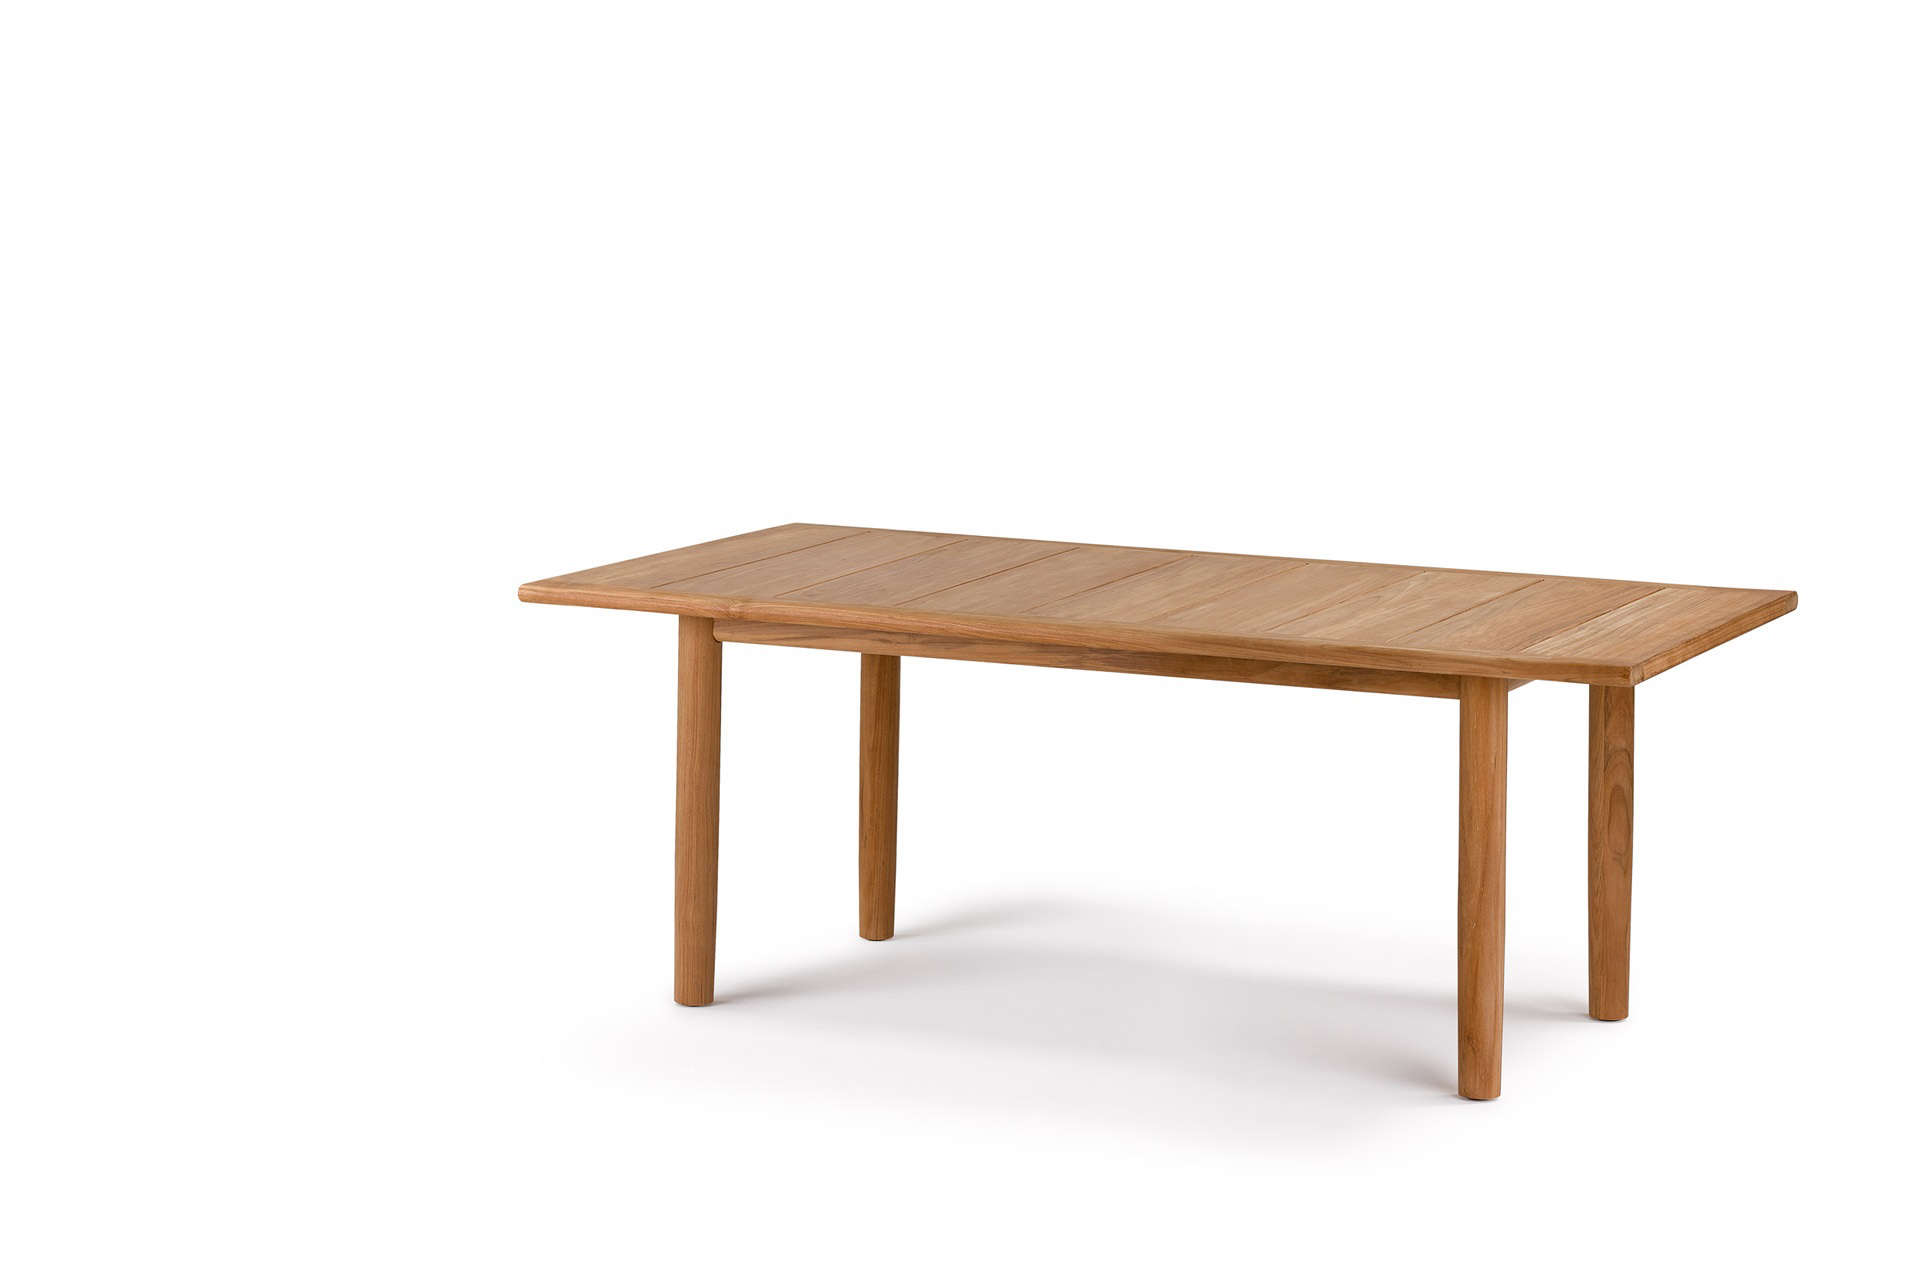 Sleek Teak: A New Outdoor Furniture Collection by Barber & Osgerby ...